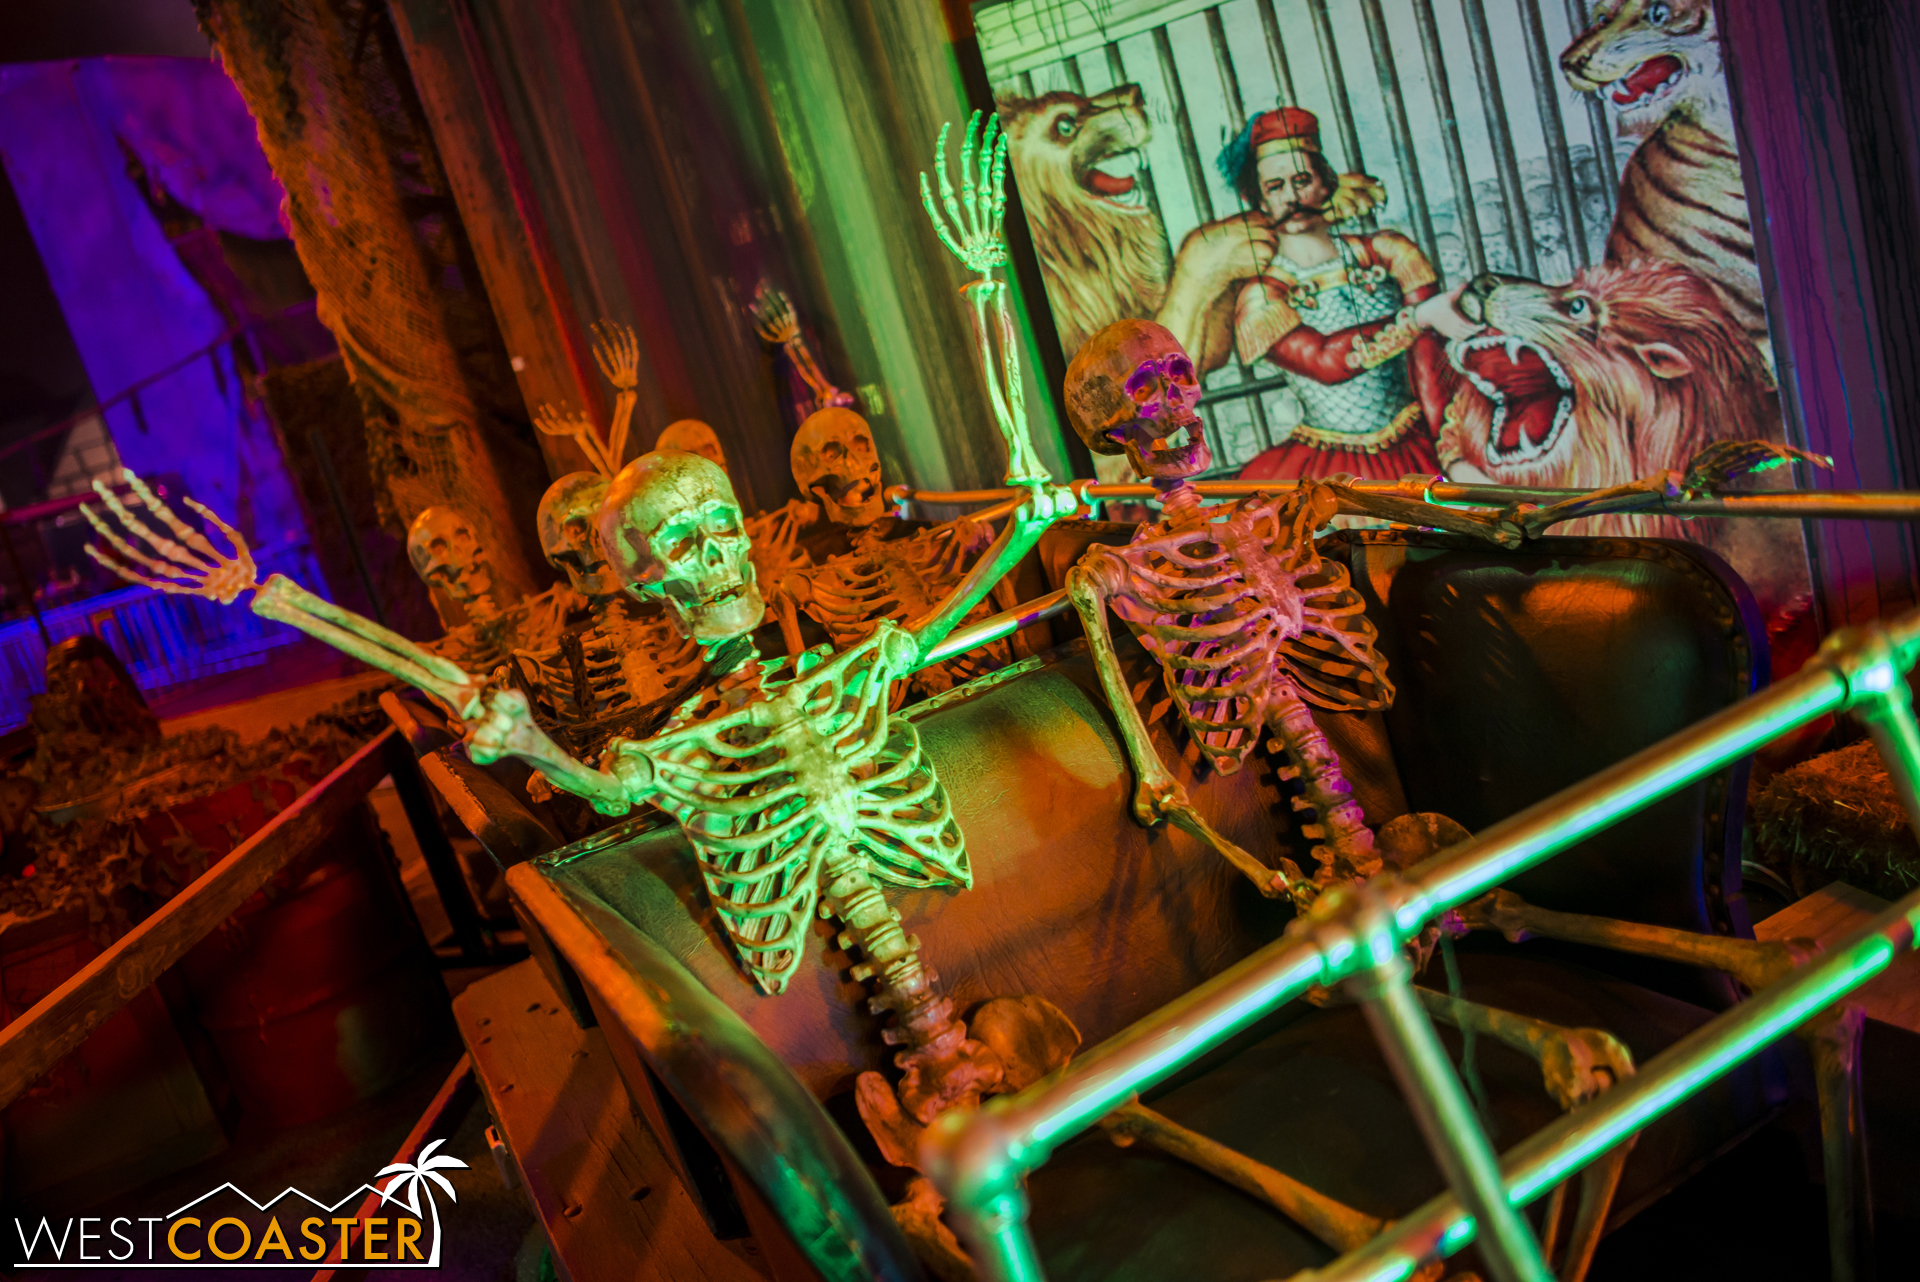 I do love these roller coaster riding skeletons.